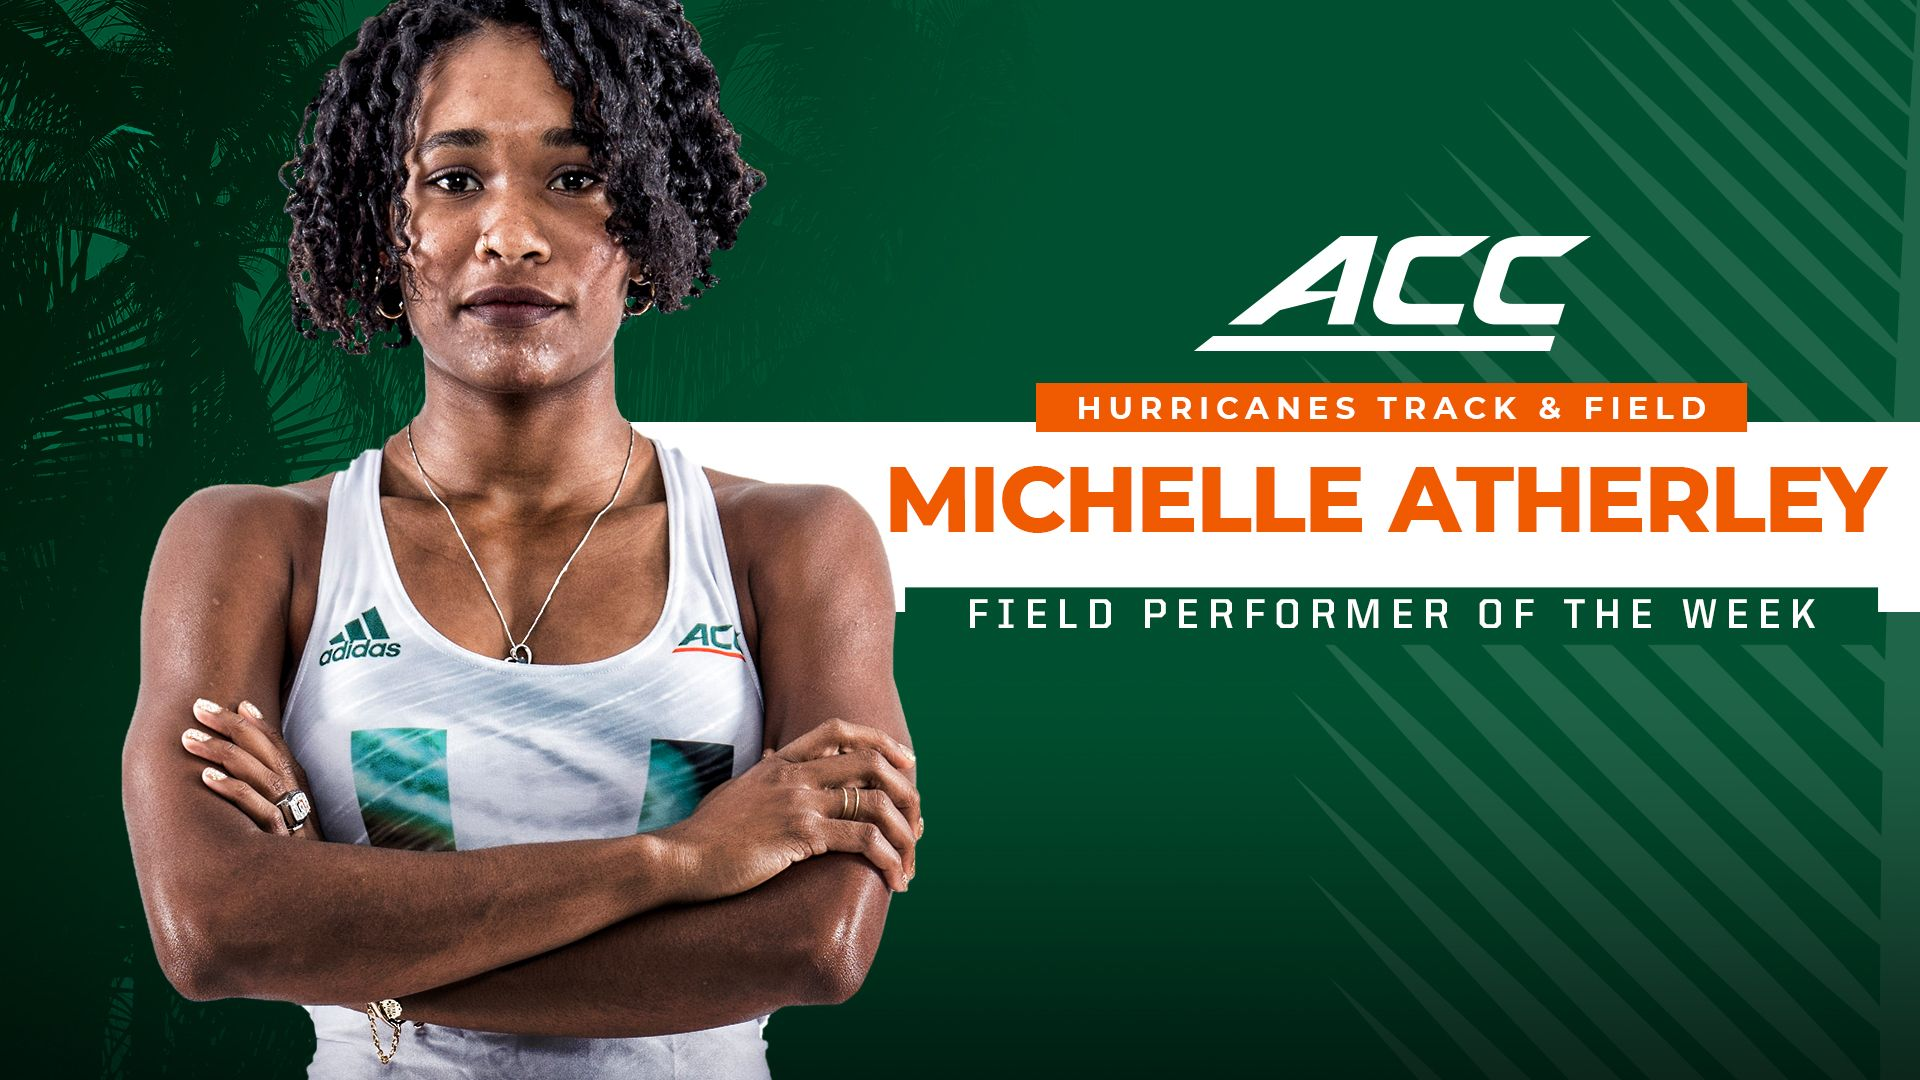 Atherley Wins ACC Field Performer of the Week